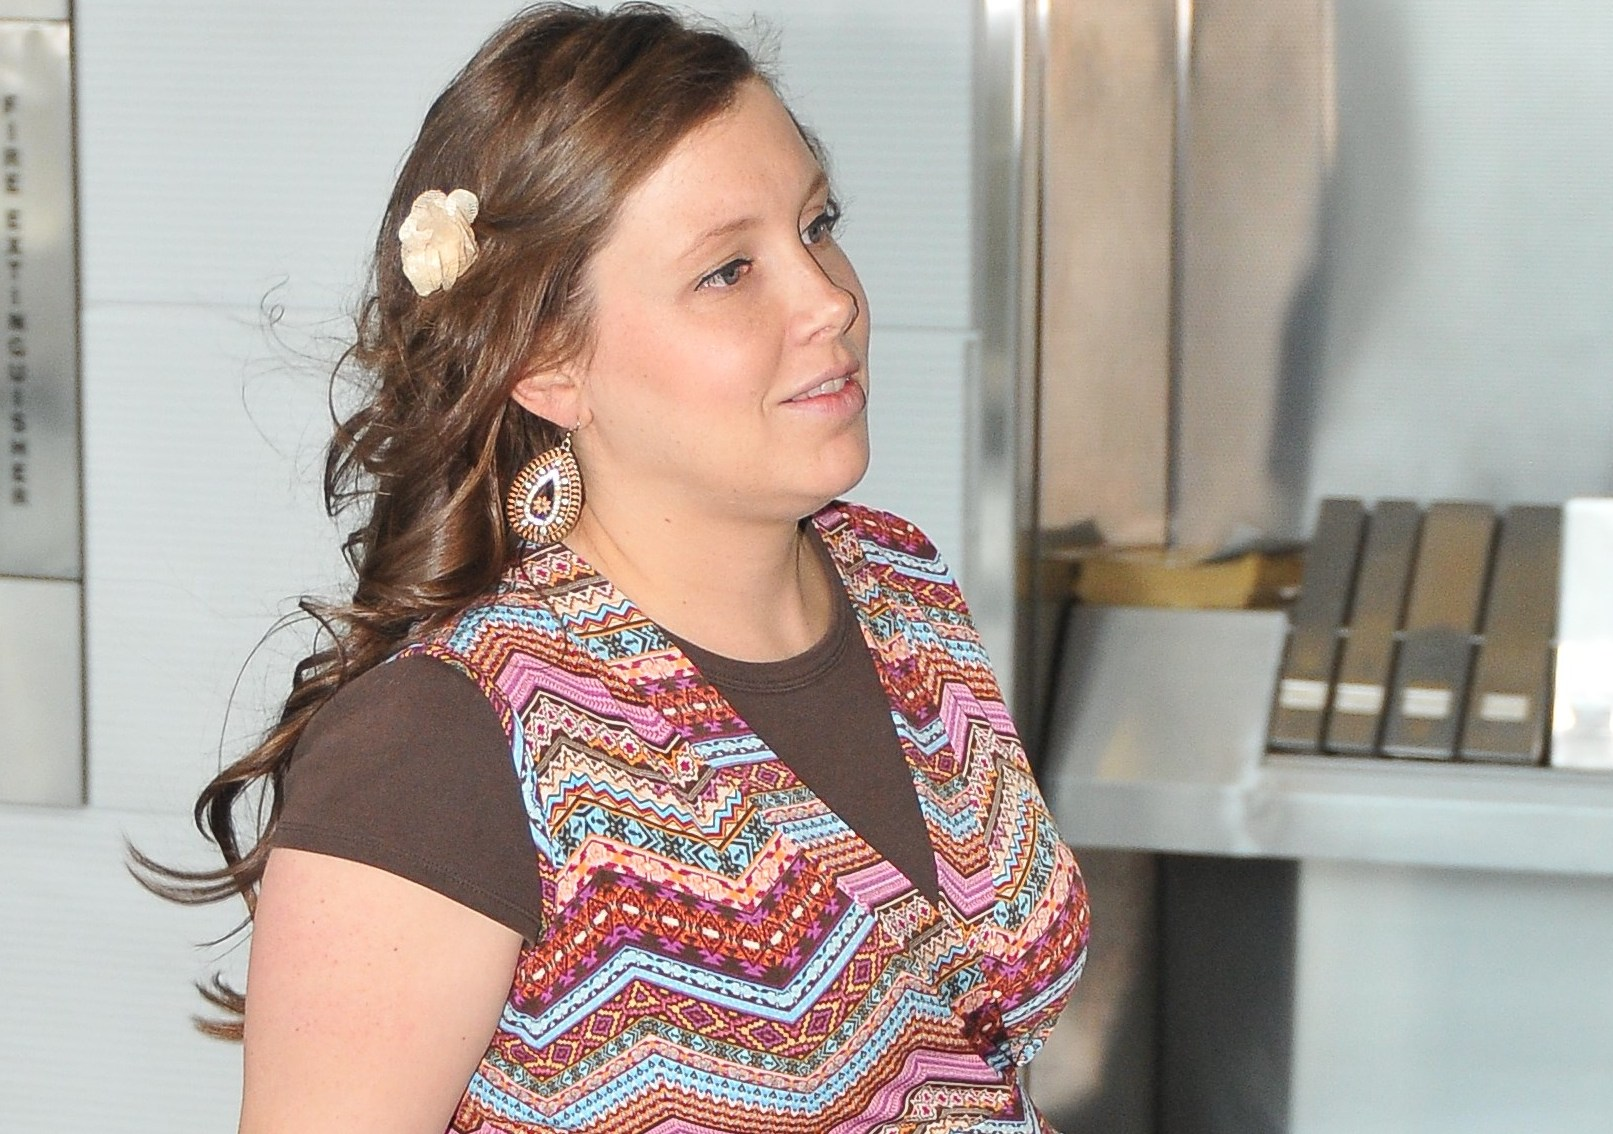 EXCLUSIVE: A very pregnant Anna Duggar arrives at a Washington, DC airport